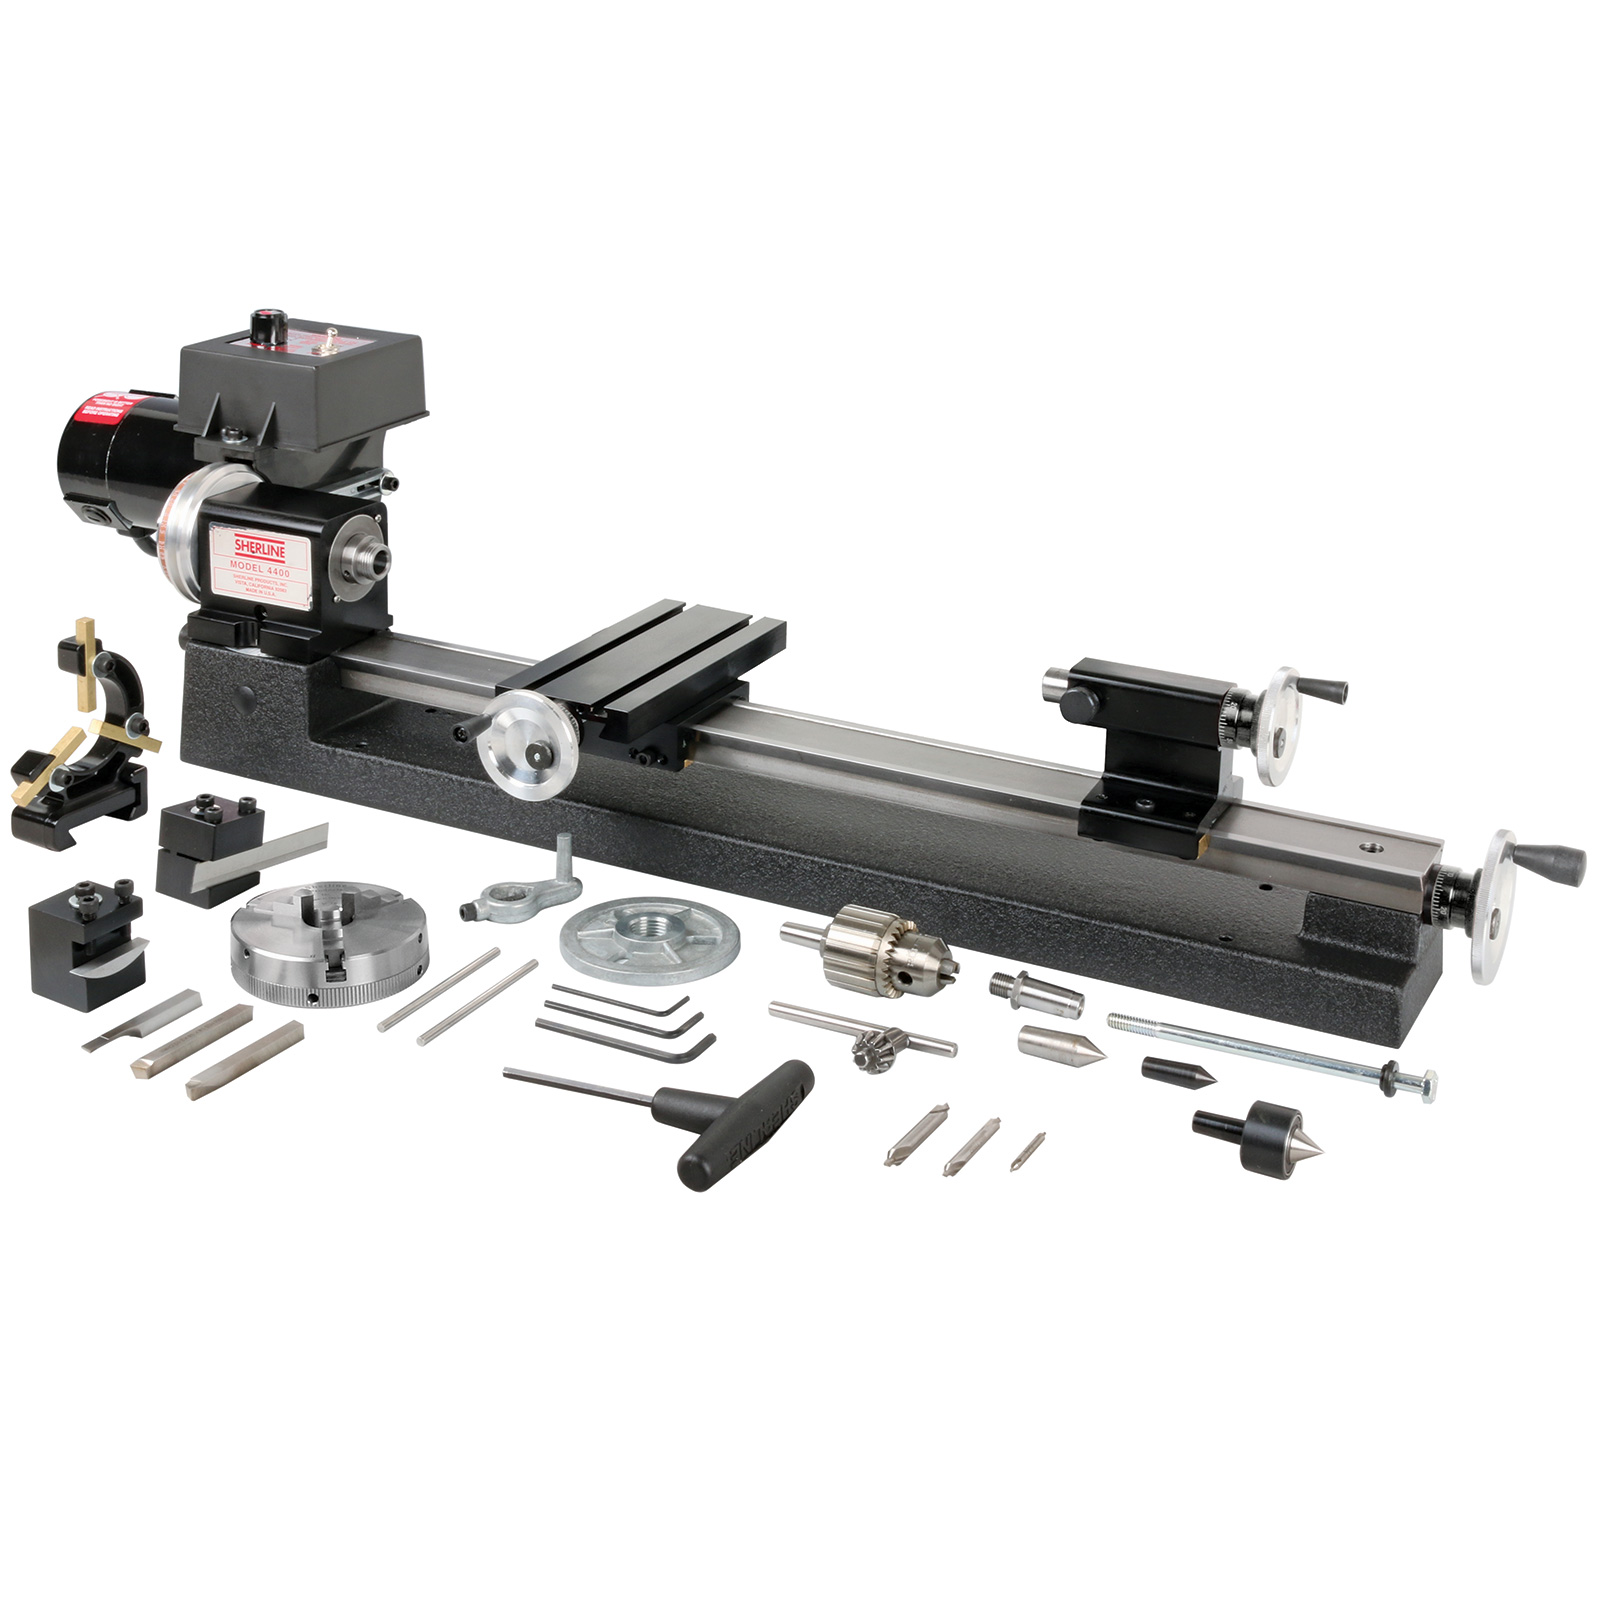 Sherline 4400 Series Lathe Package